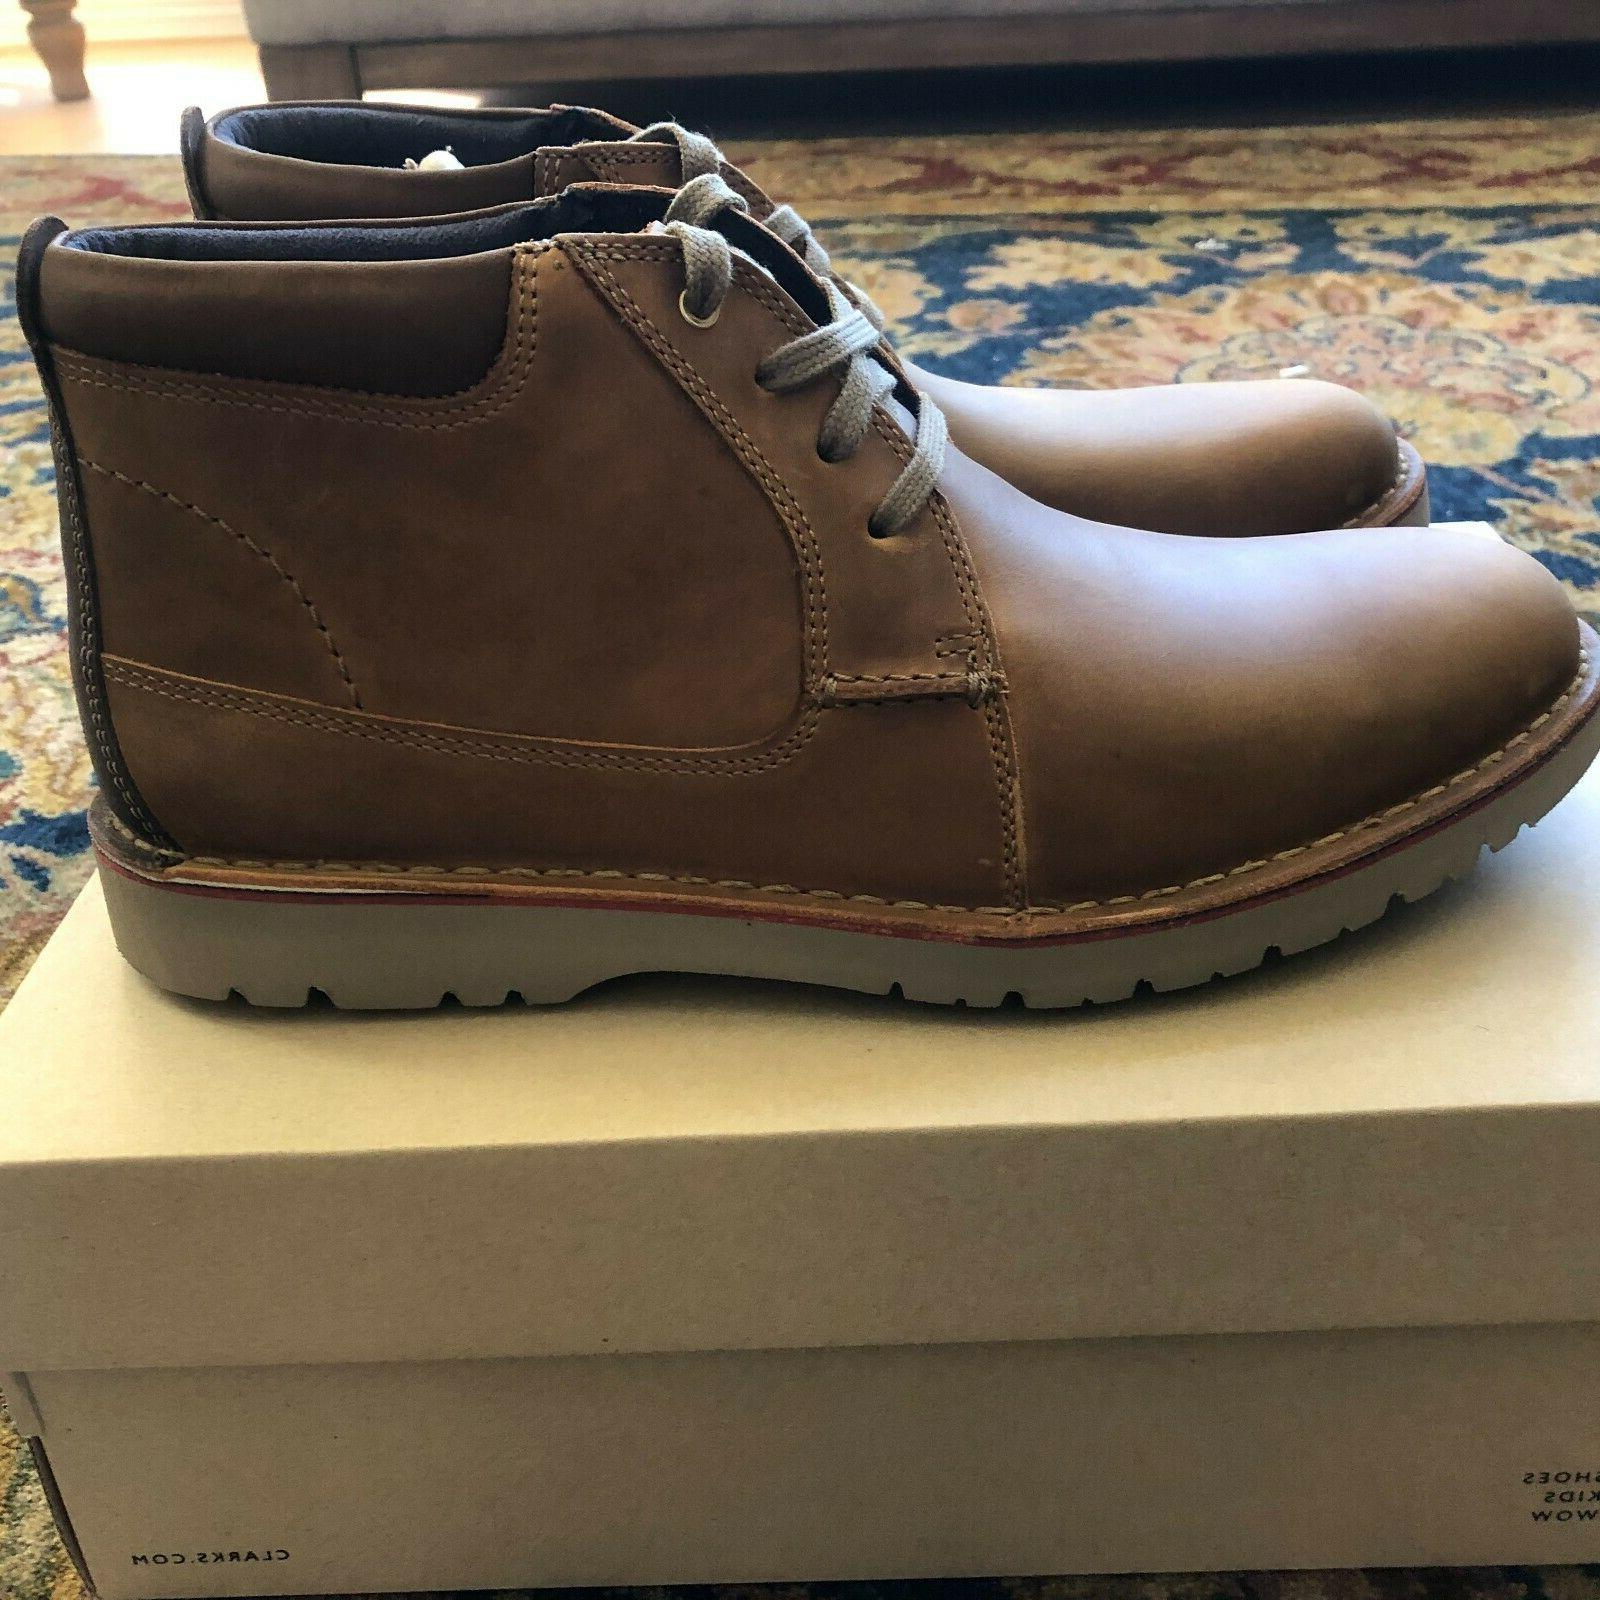 Brand New Shoes Size 11 & 11.5 Vargo Leather NIB Boots